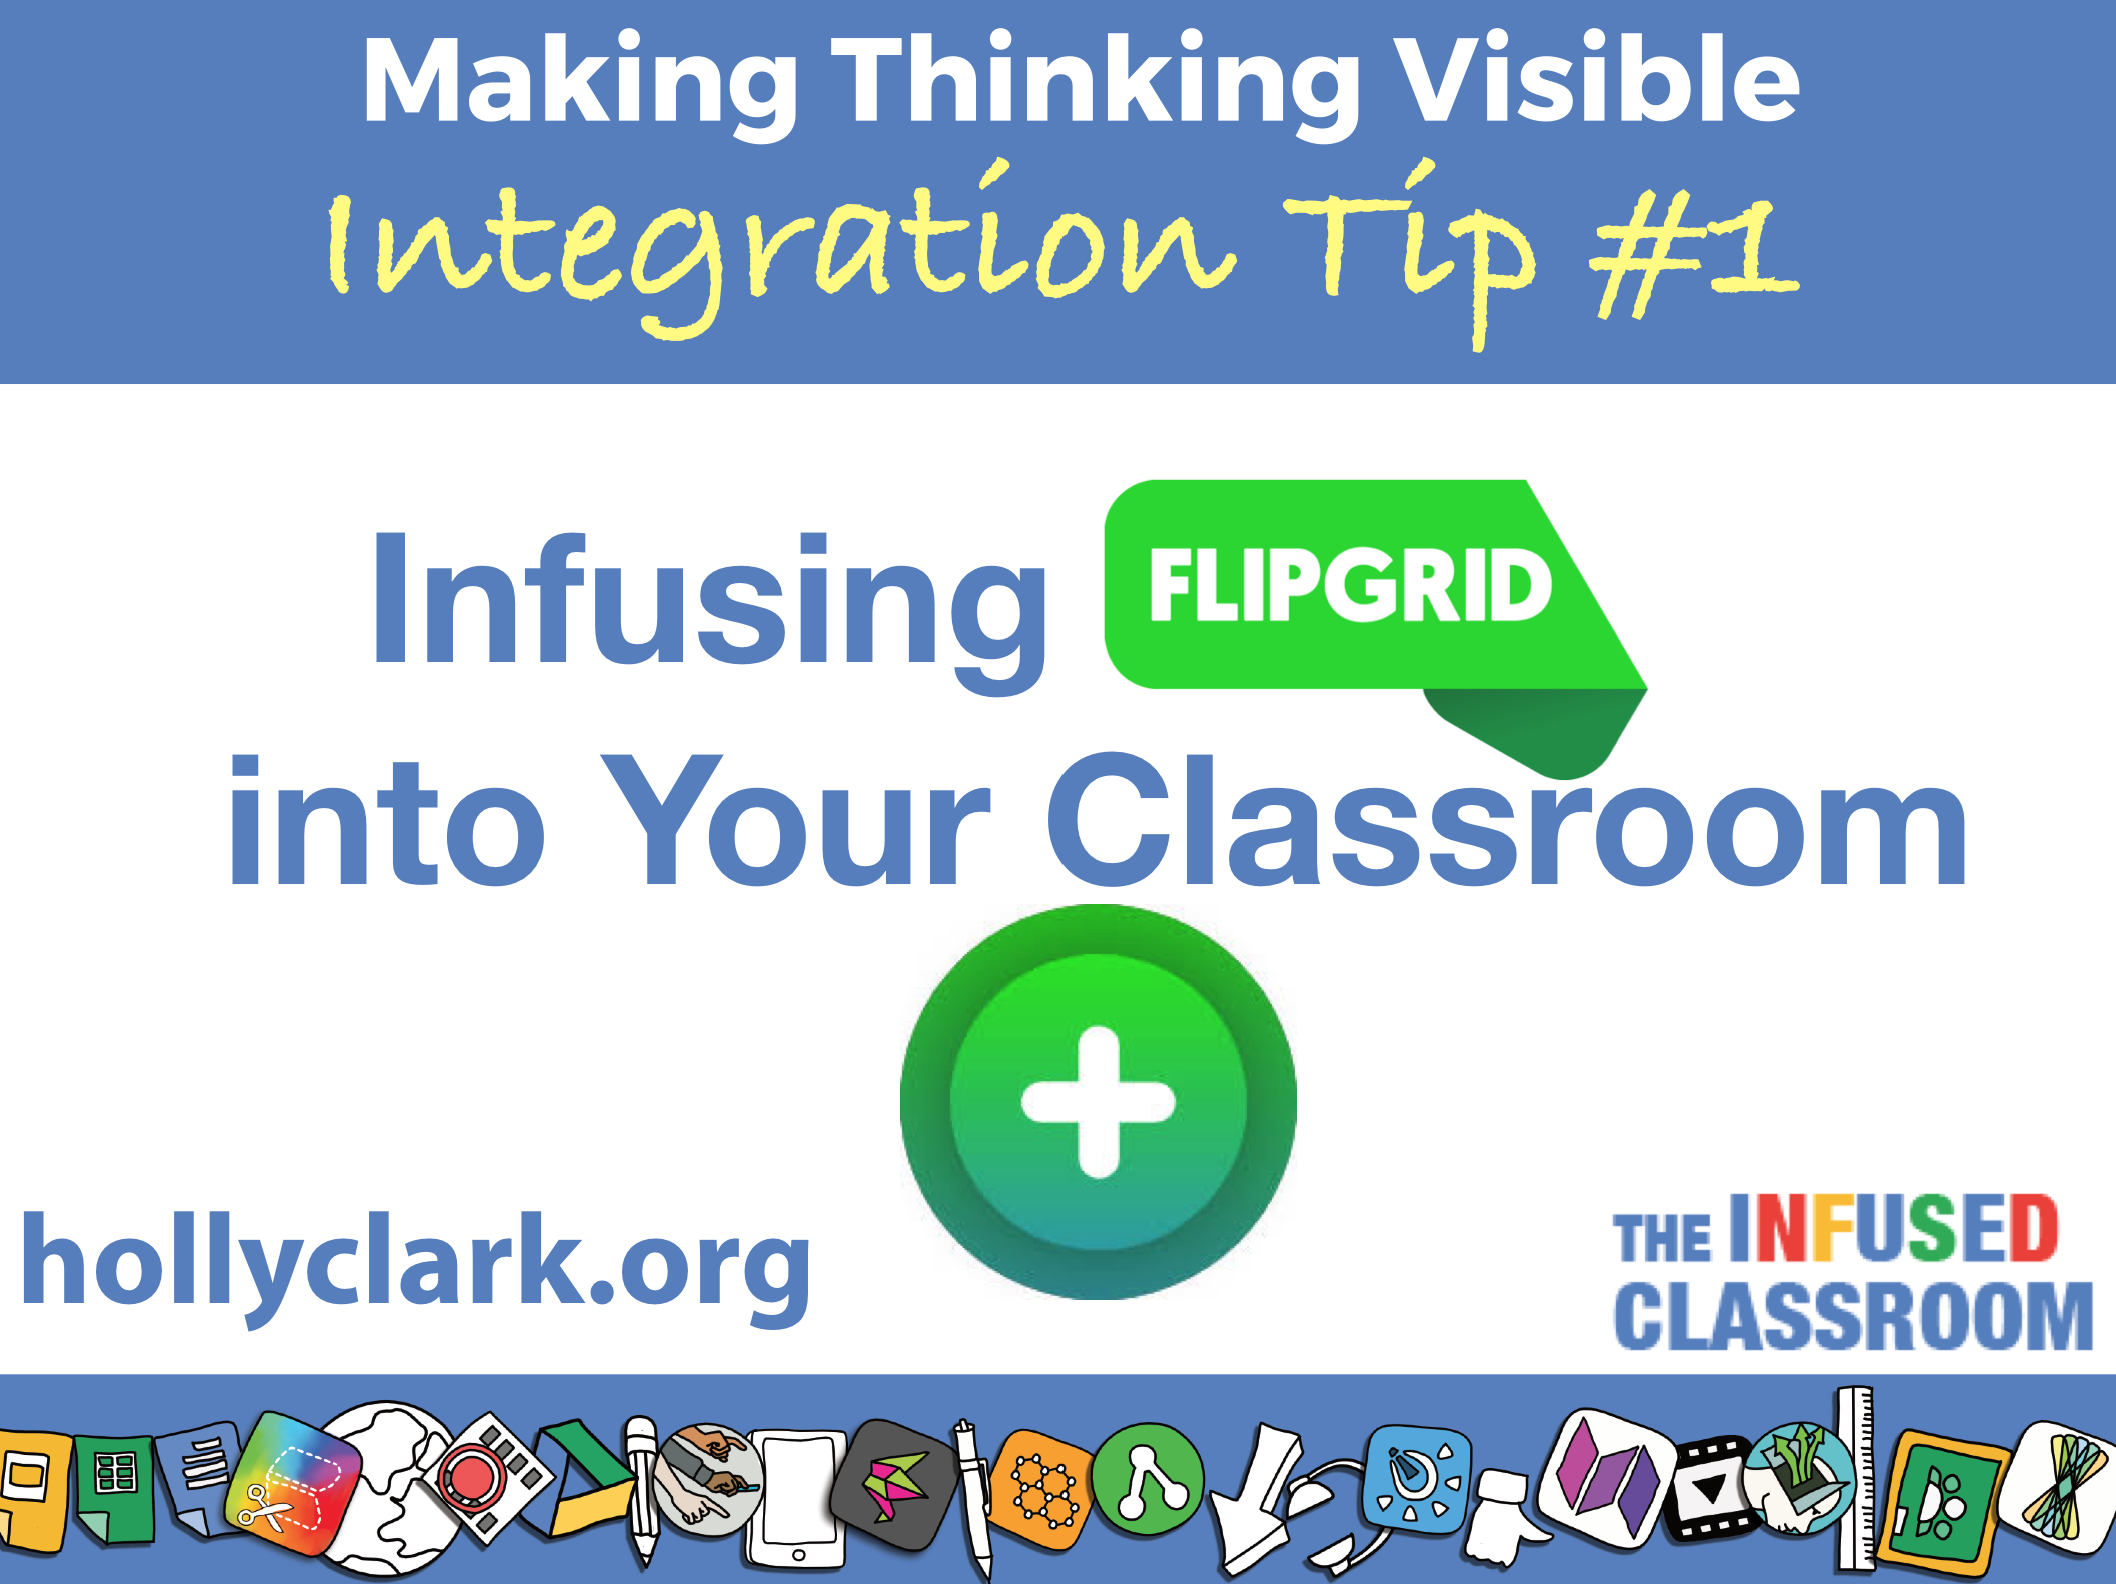 Infusing #Flipgrid into Your Classroom